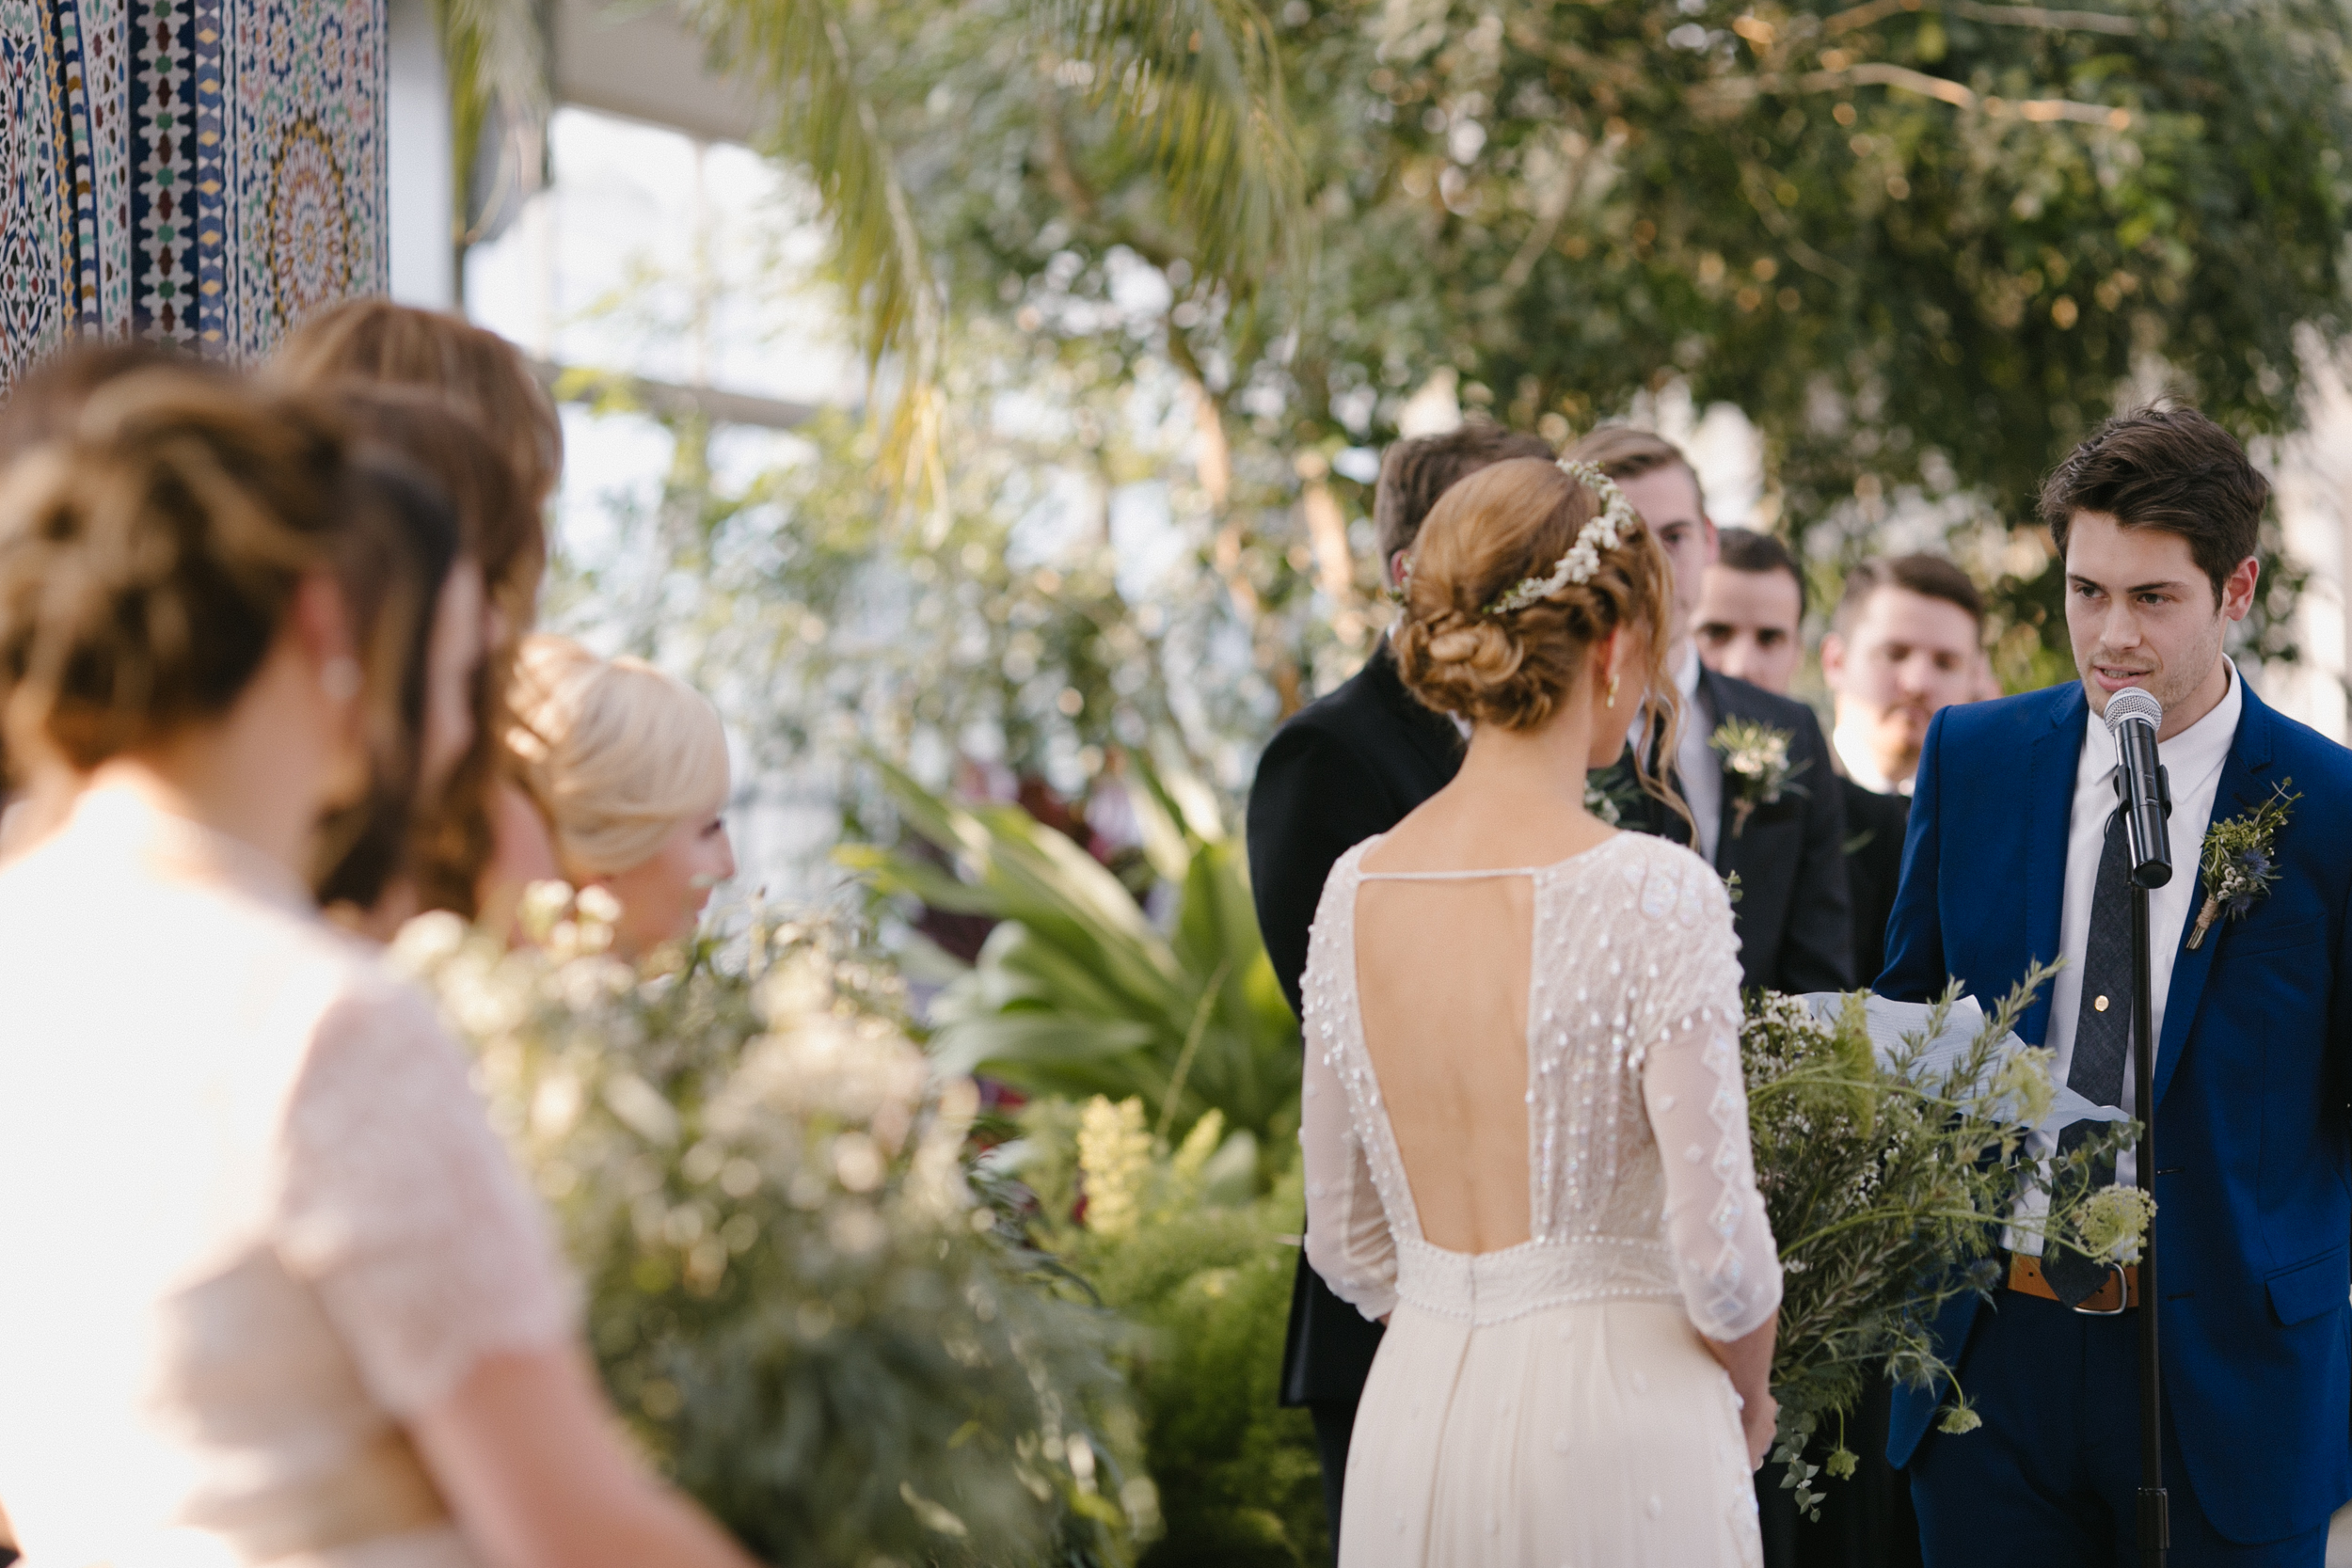 Chicago Wedding Garfield Park Conservatory Mae Stier Wedding Photographer Lifestyle Photography Midwest California-049.jpg